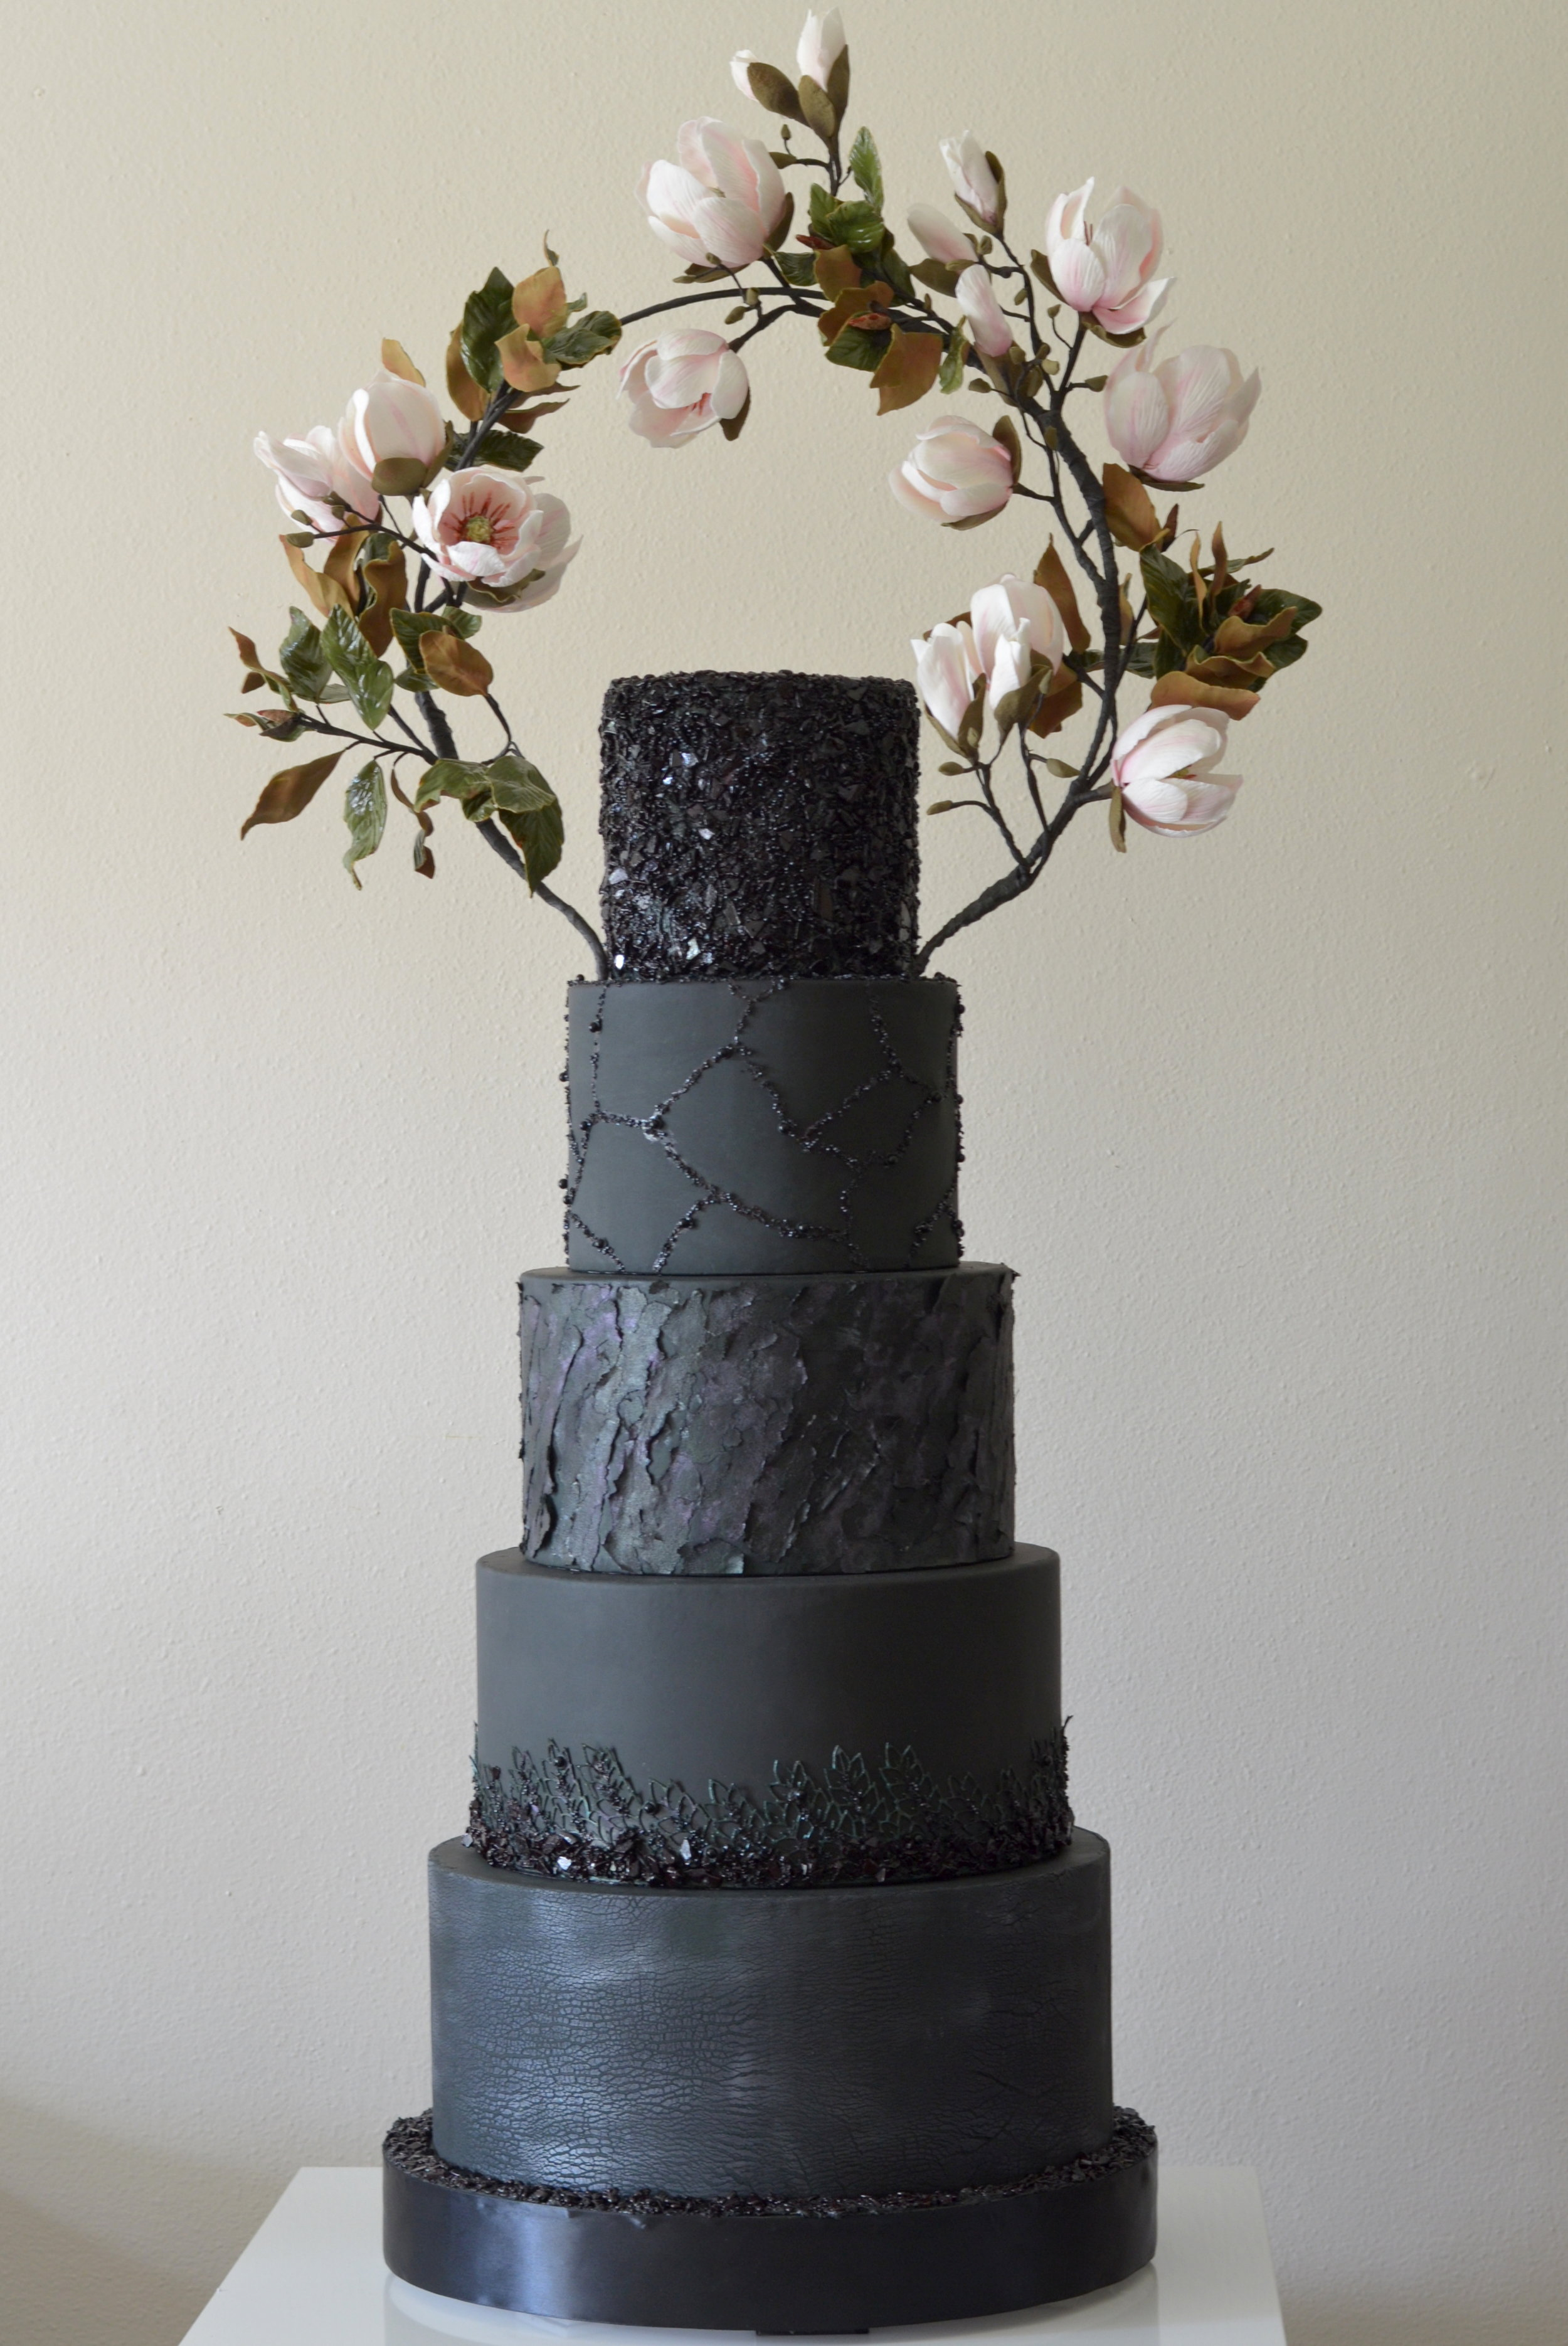 Anna Astashkina - Bloom Cakery - Wow, this cake is all kinds of black gorgeousness. We anticipate the